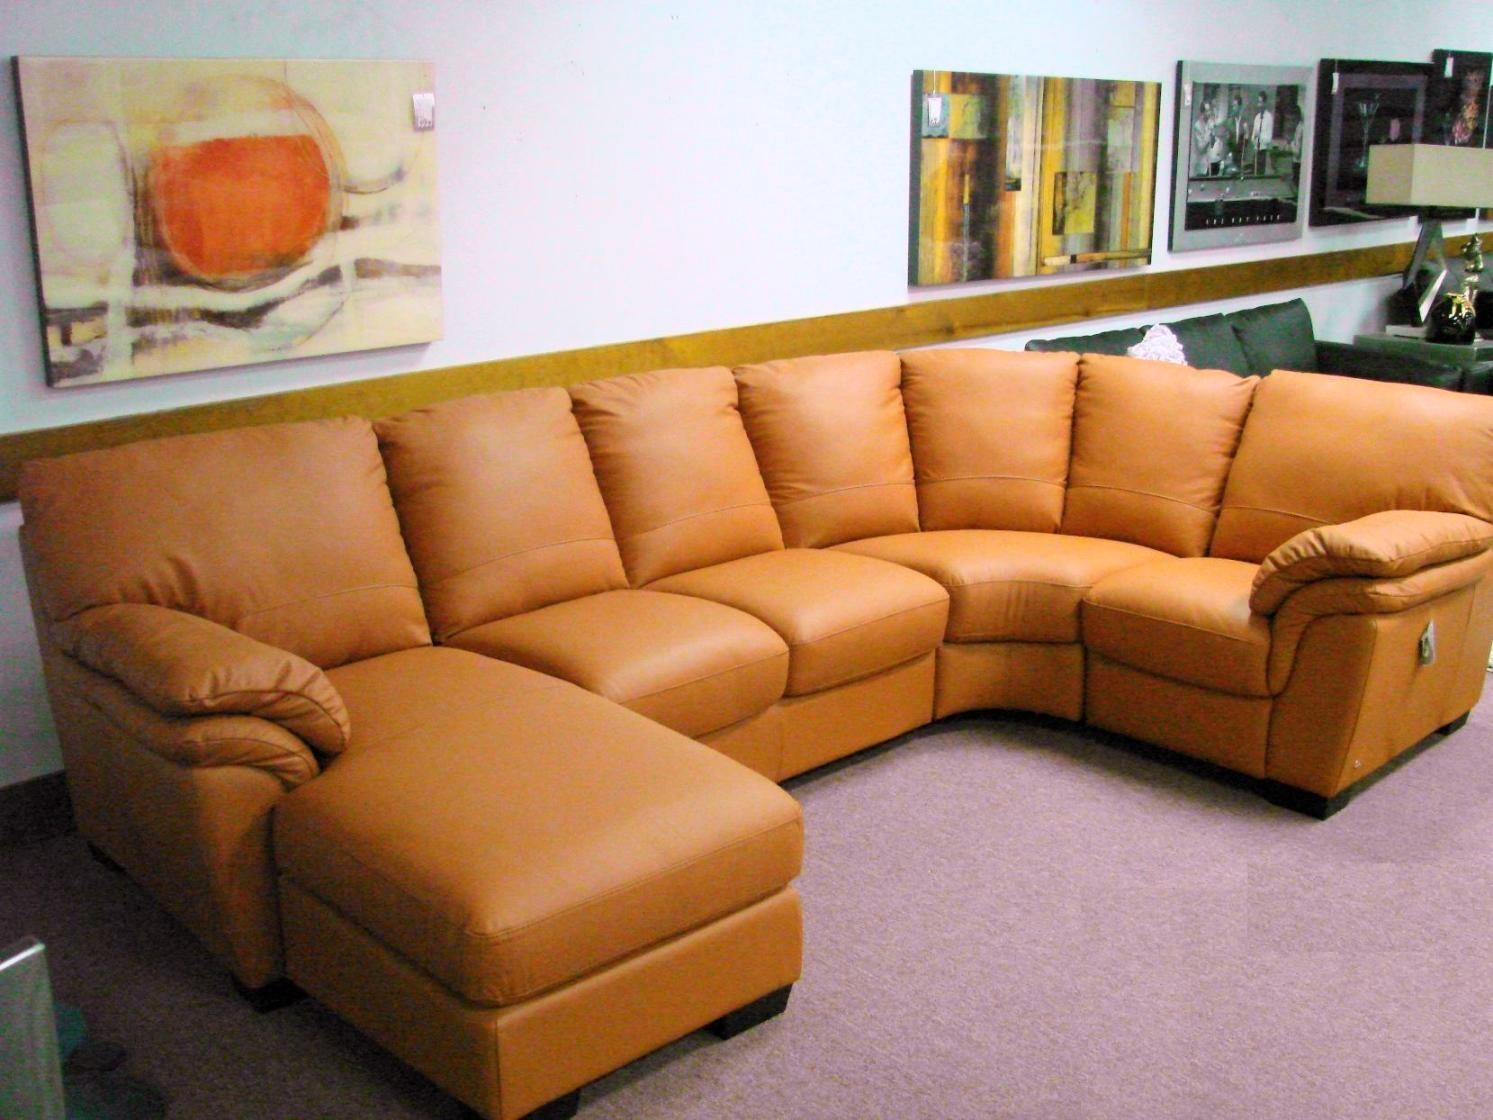 Sofas Center : Orange Leather Sofa Sectional Sleepers Sleeper Inside Burnt Orange Leather Sofas (Image 16 of 20)